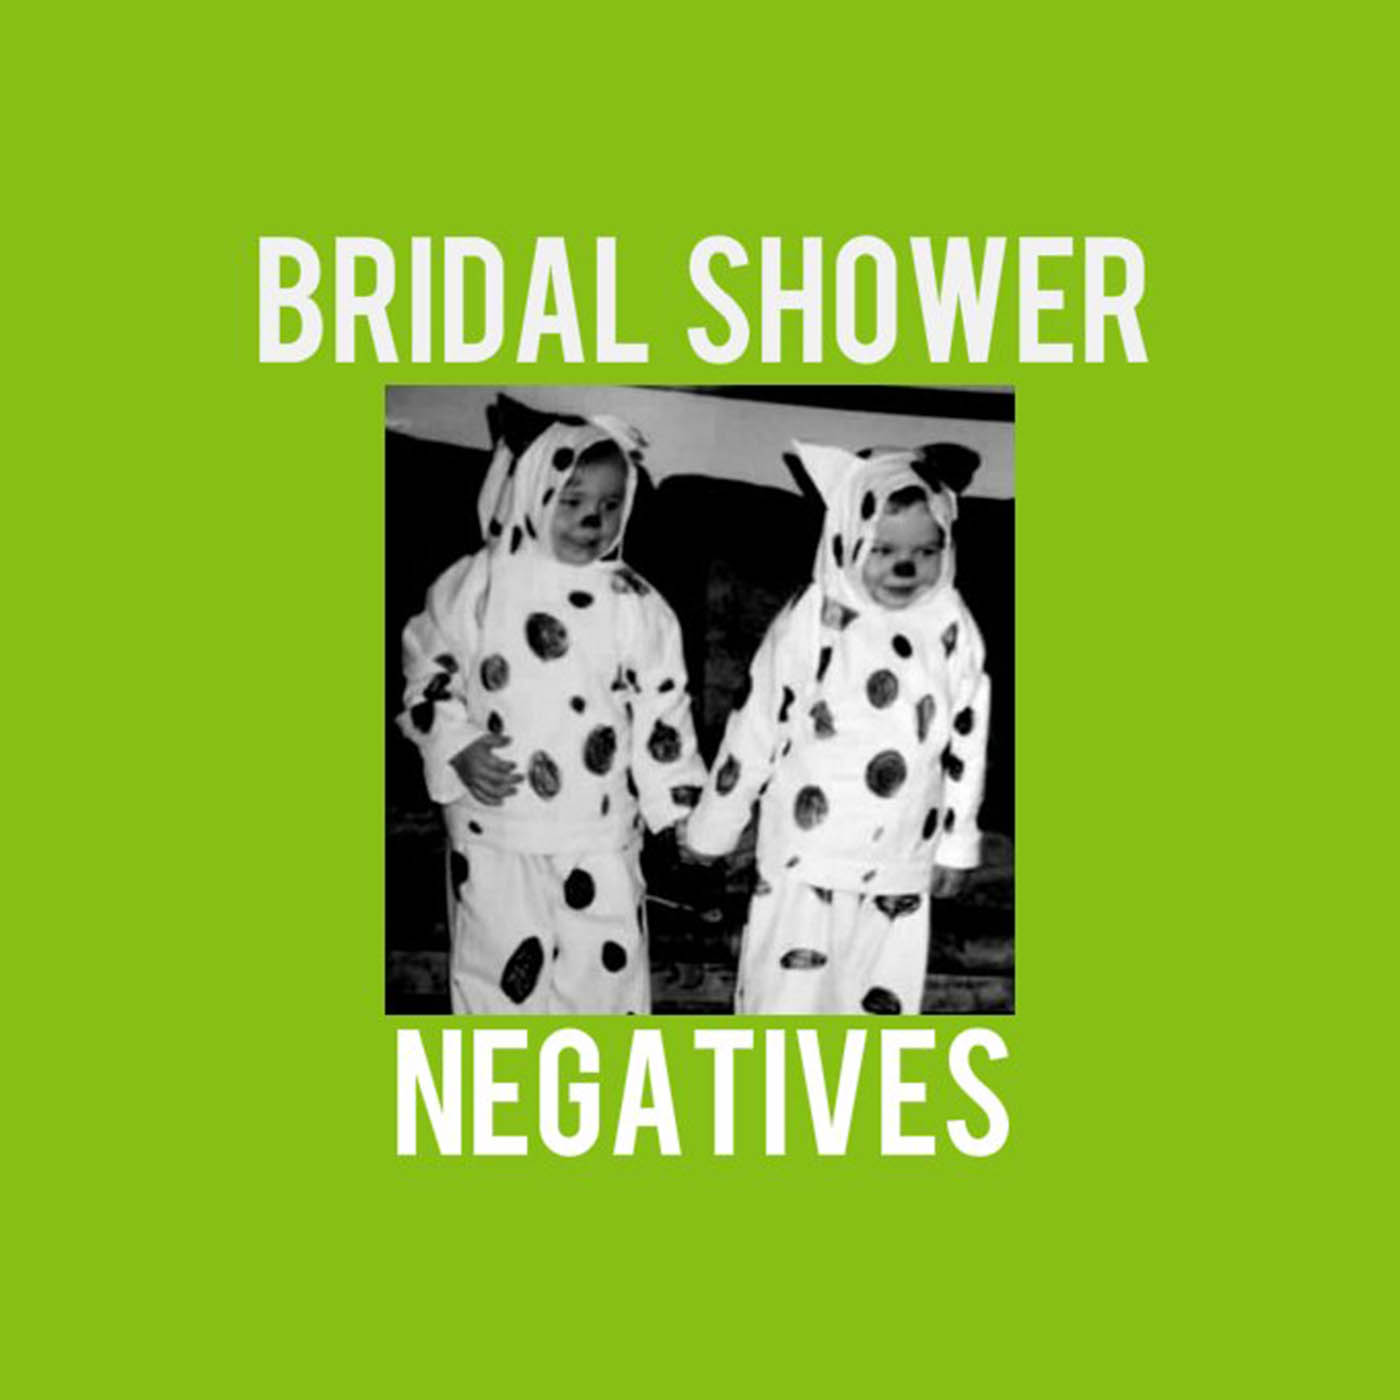 Bridal Shower - Negatives